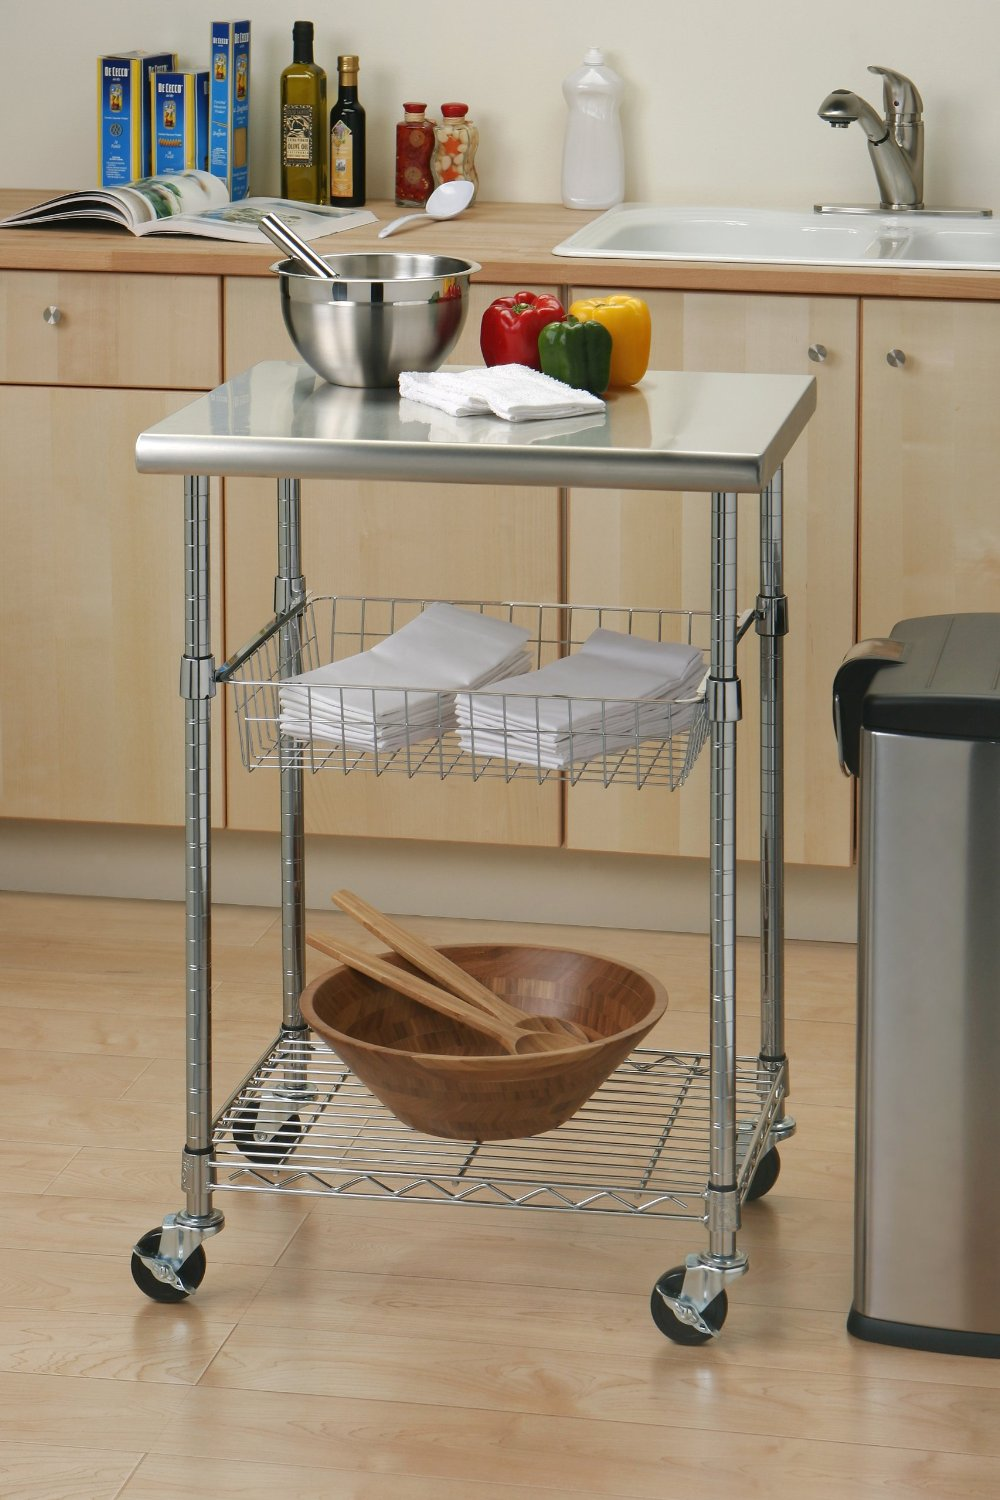 Seville Clics Stainless Steel Professional Kitchen Cart Cutting Table